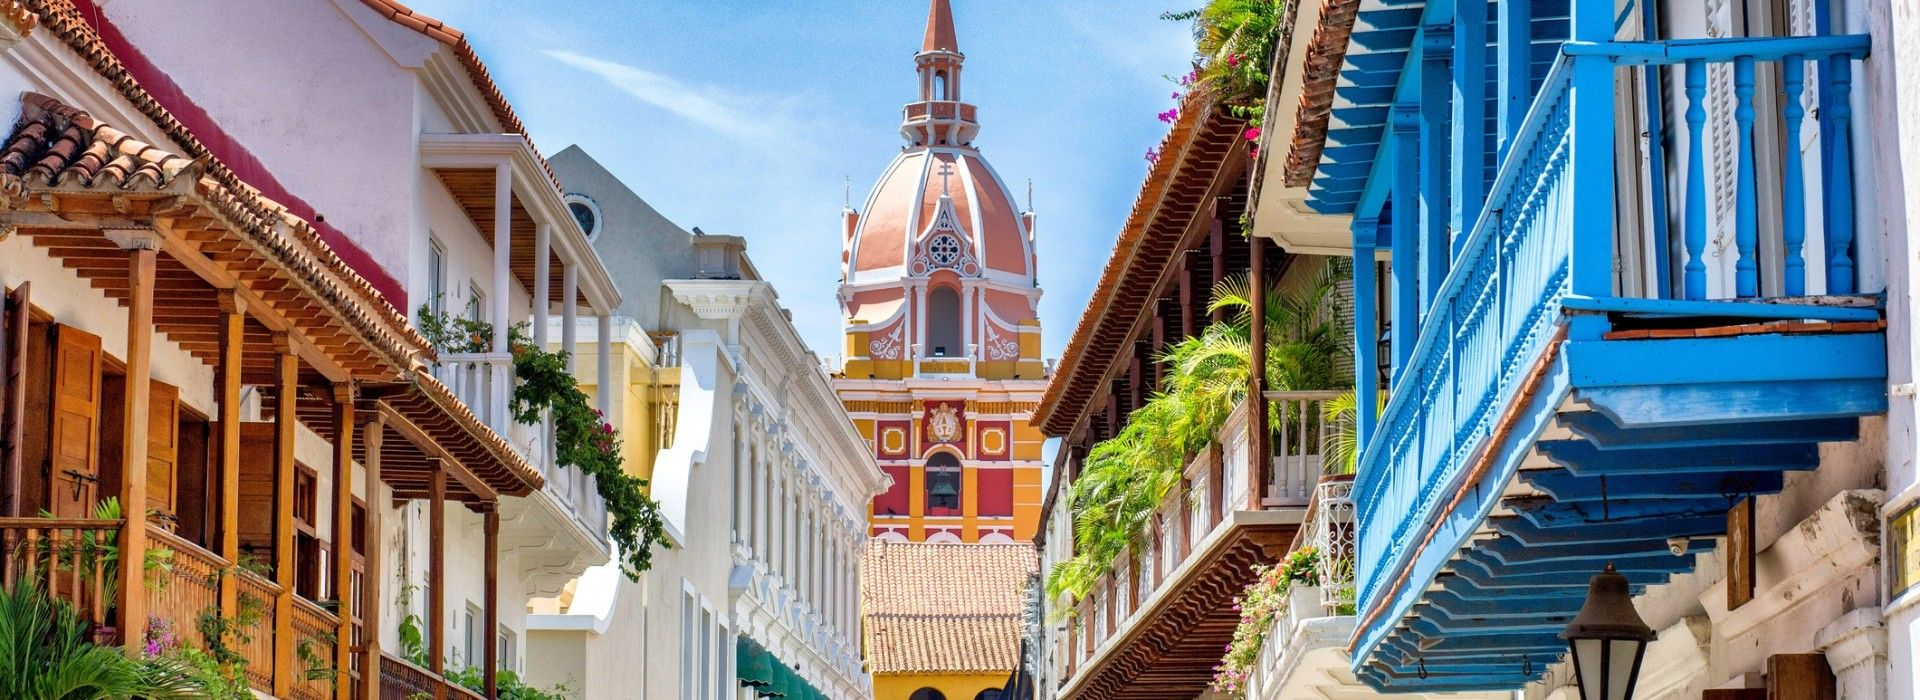 No trip to Cartagena would be complete without visiting the Old Town